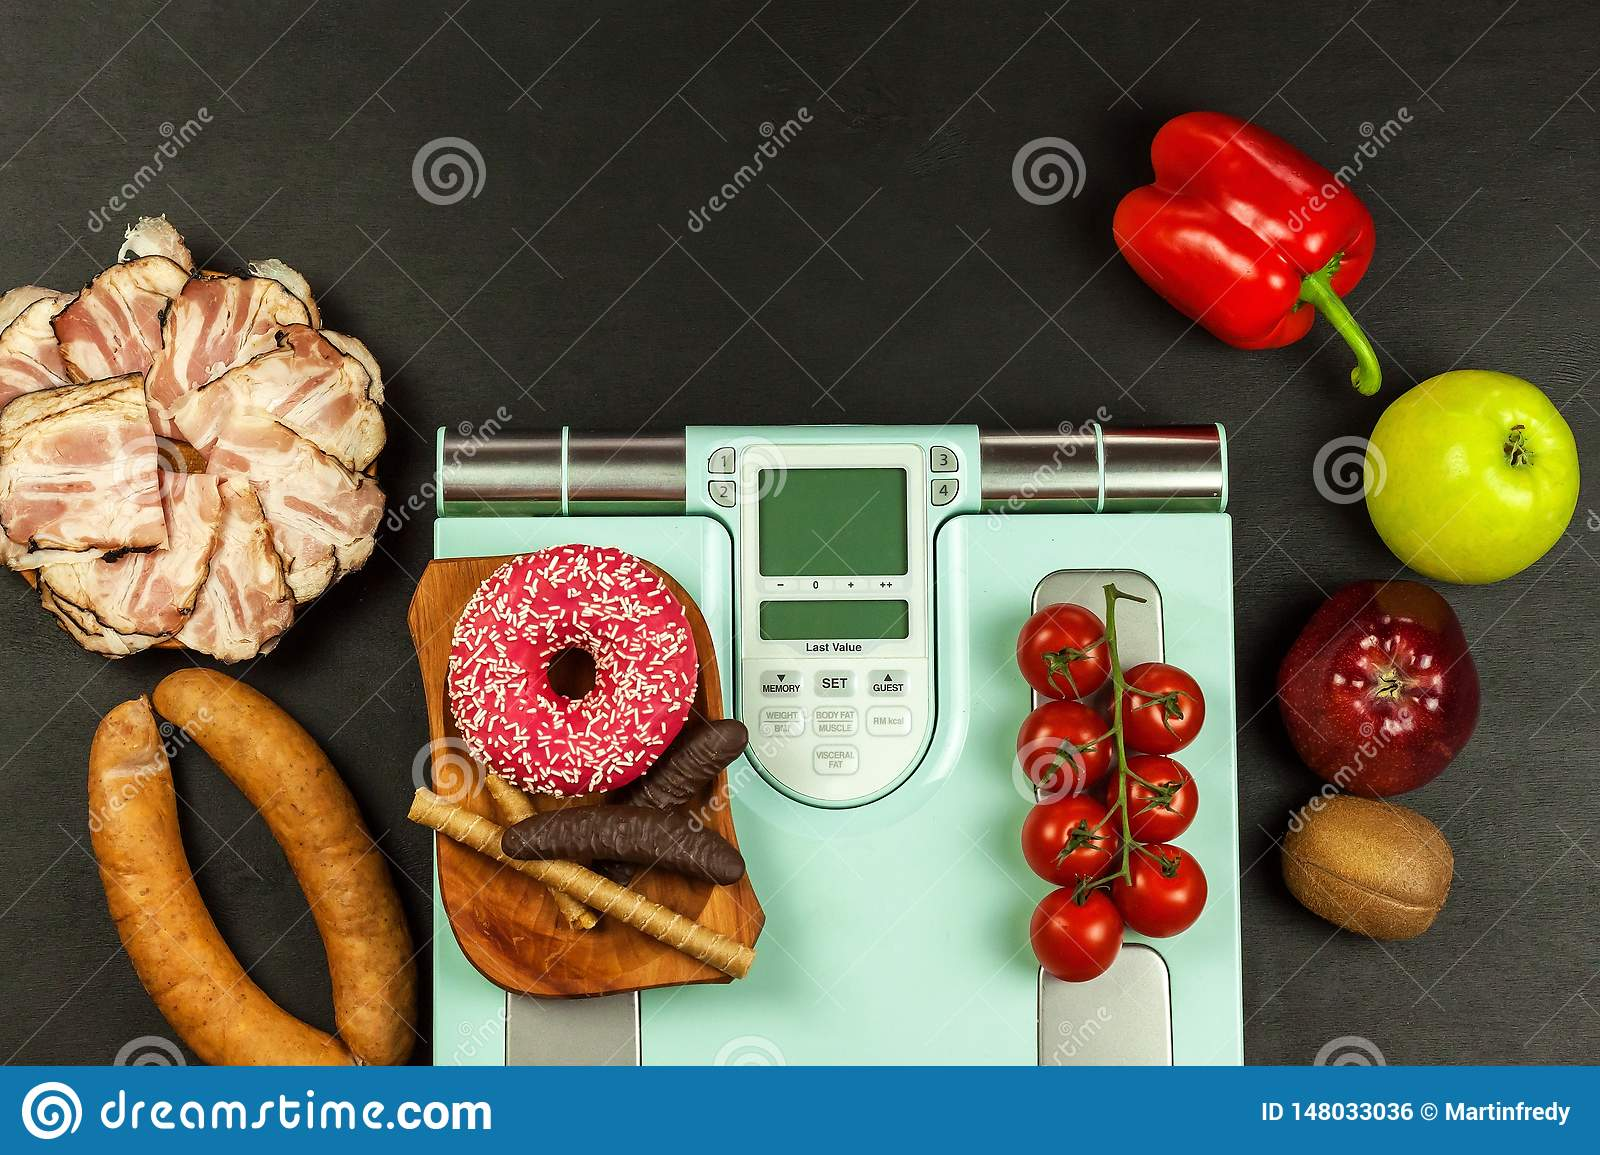 Healthy And Unhealthy Food  Obesity Concept  Modern Digital